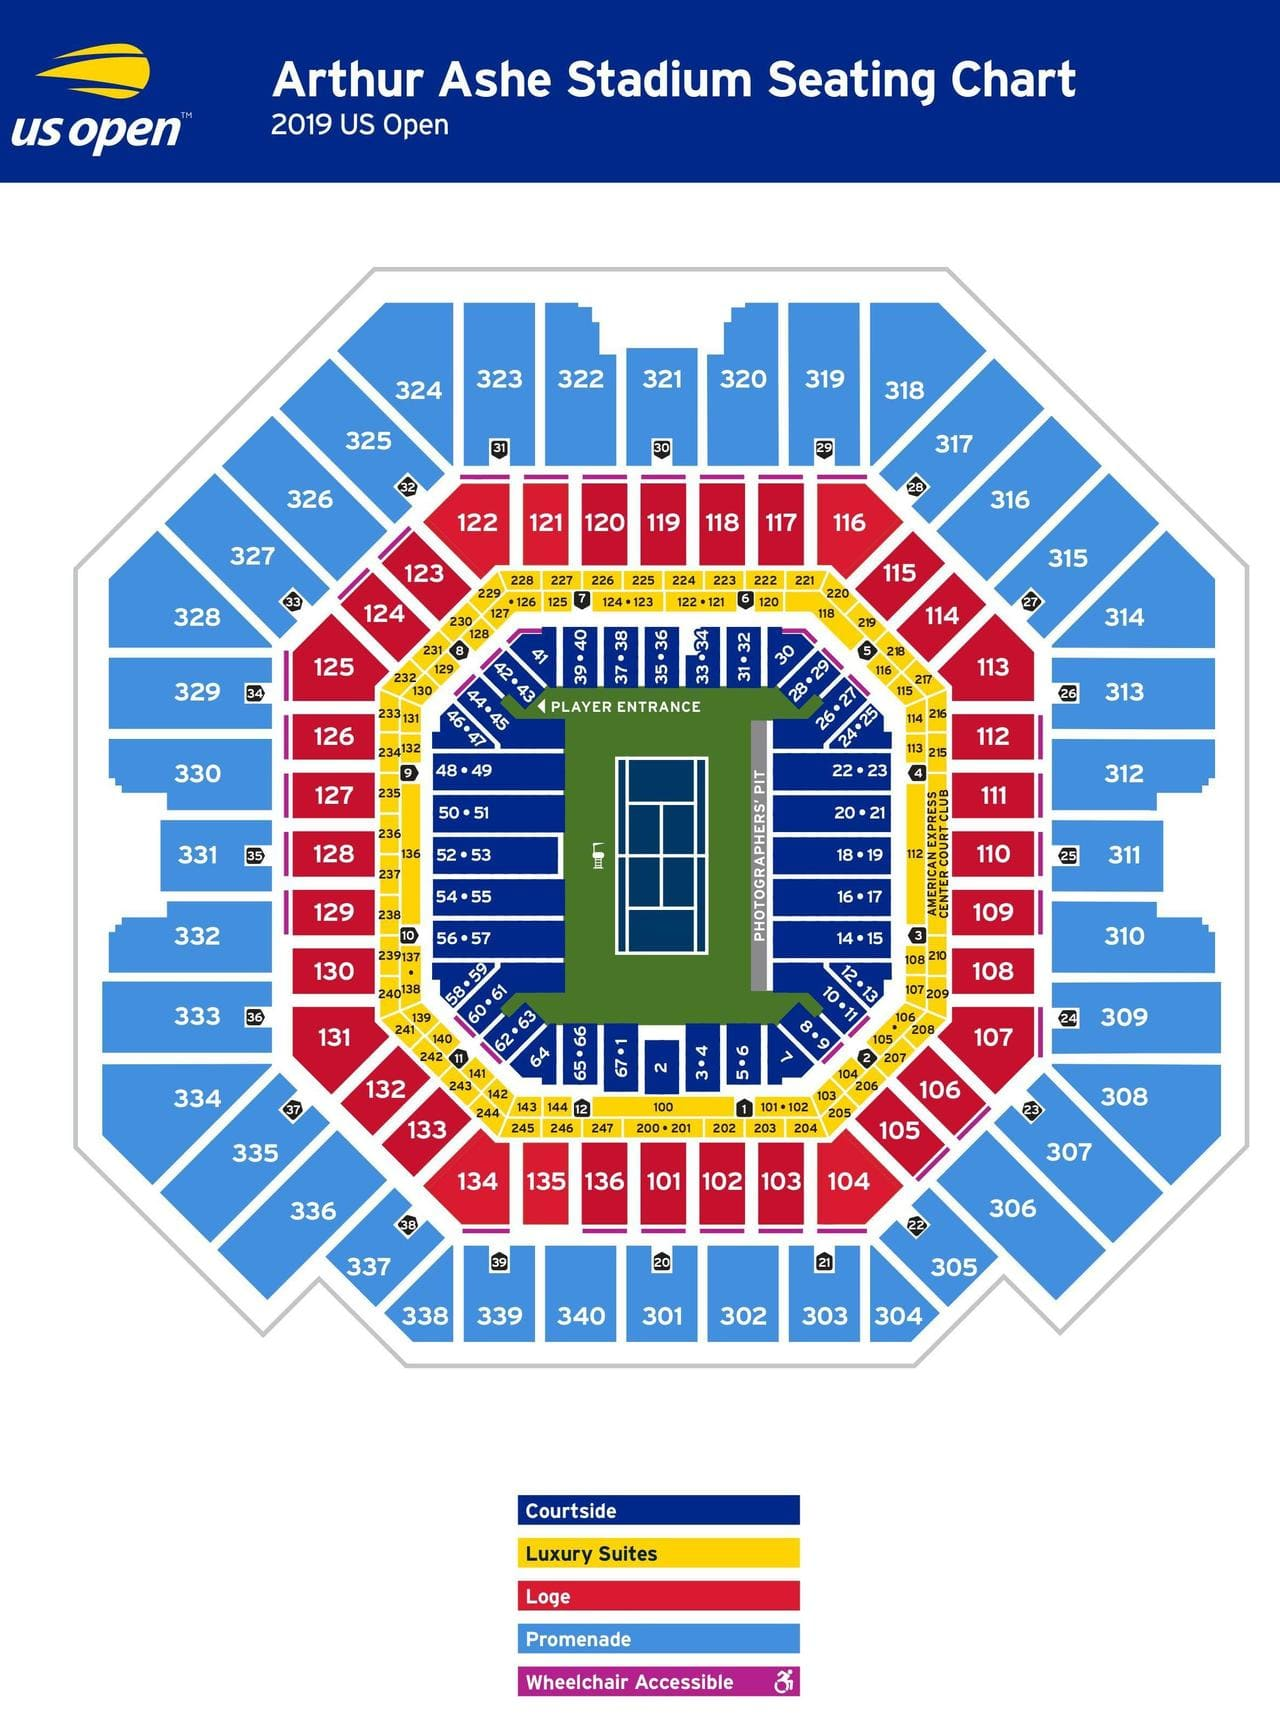 US Tennis Open Arthur Ashe Seating Chart